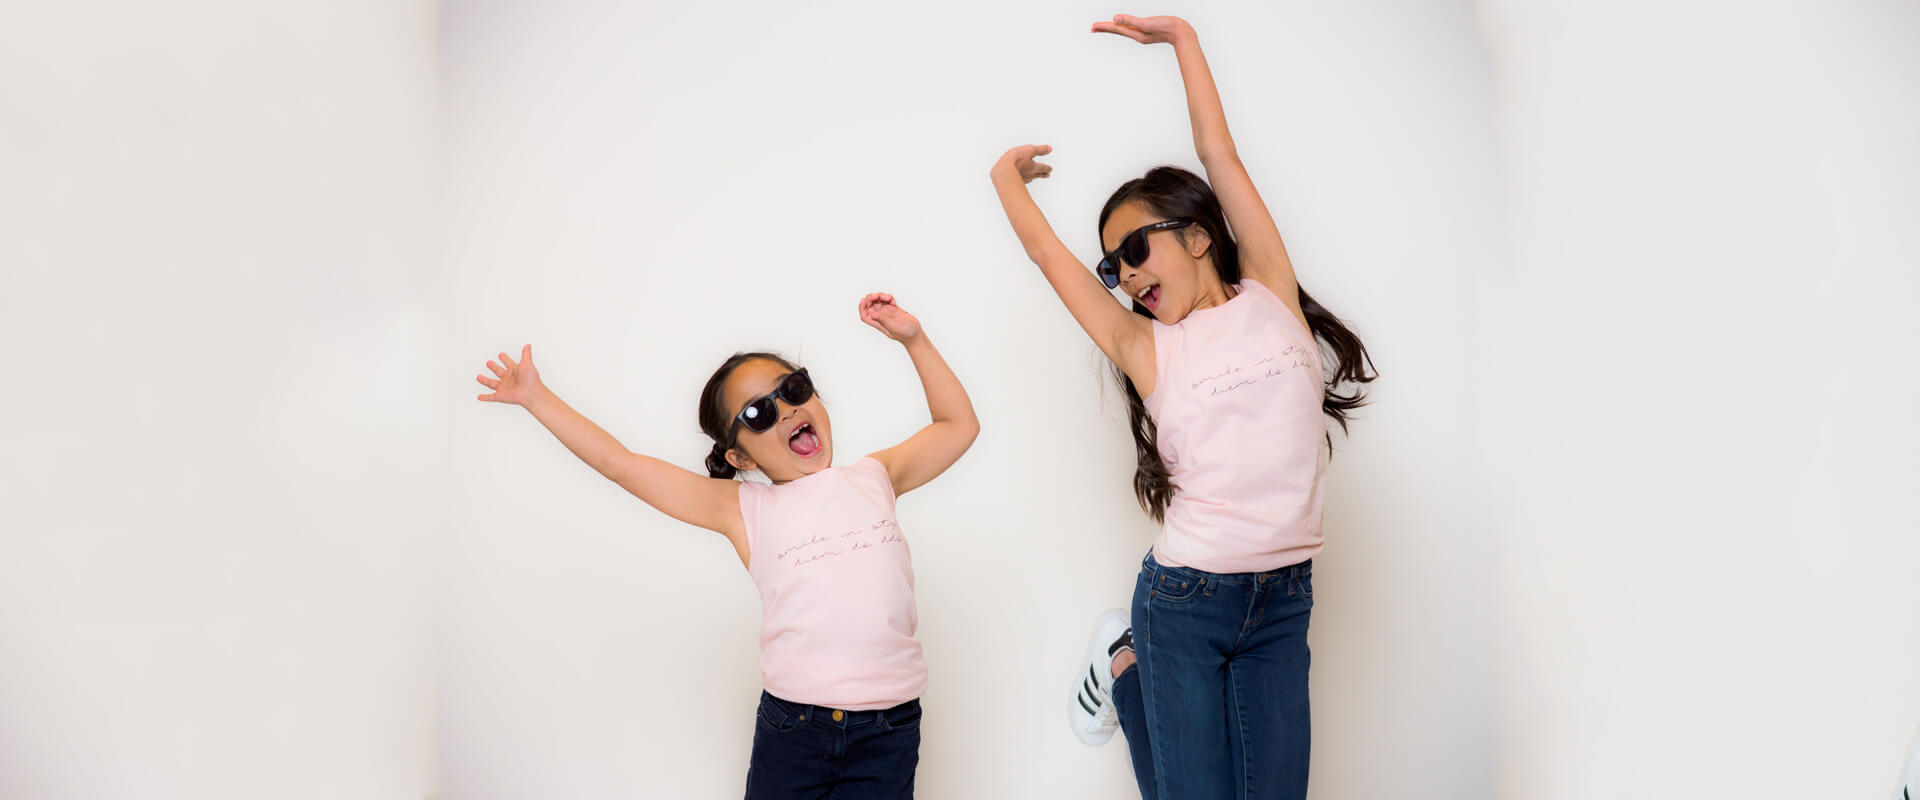 Two little girls smiling jumping in the air